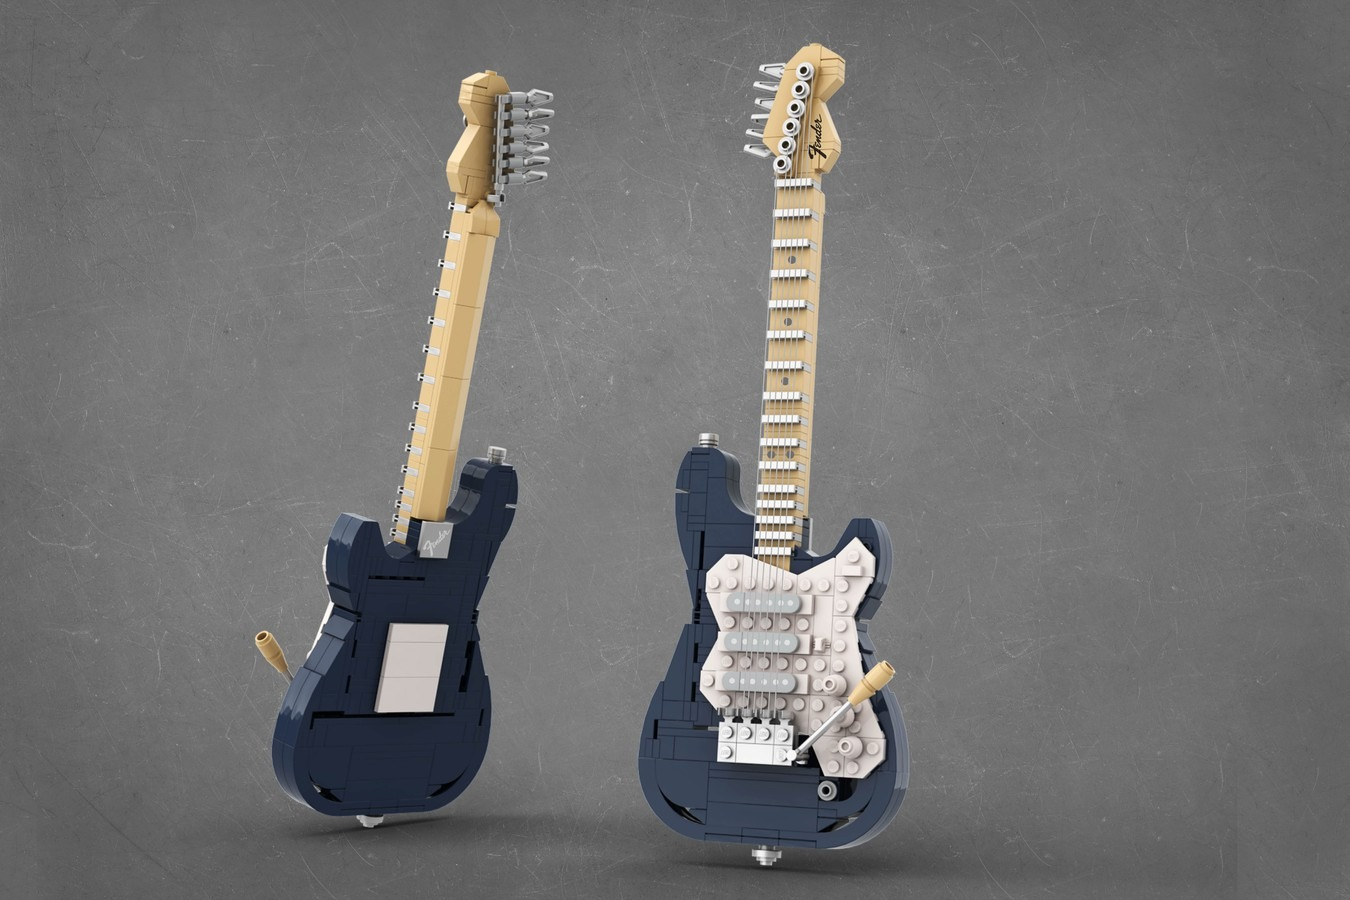 lego-to-release-fan-created-fender-stratocaster-brick-set